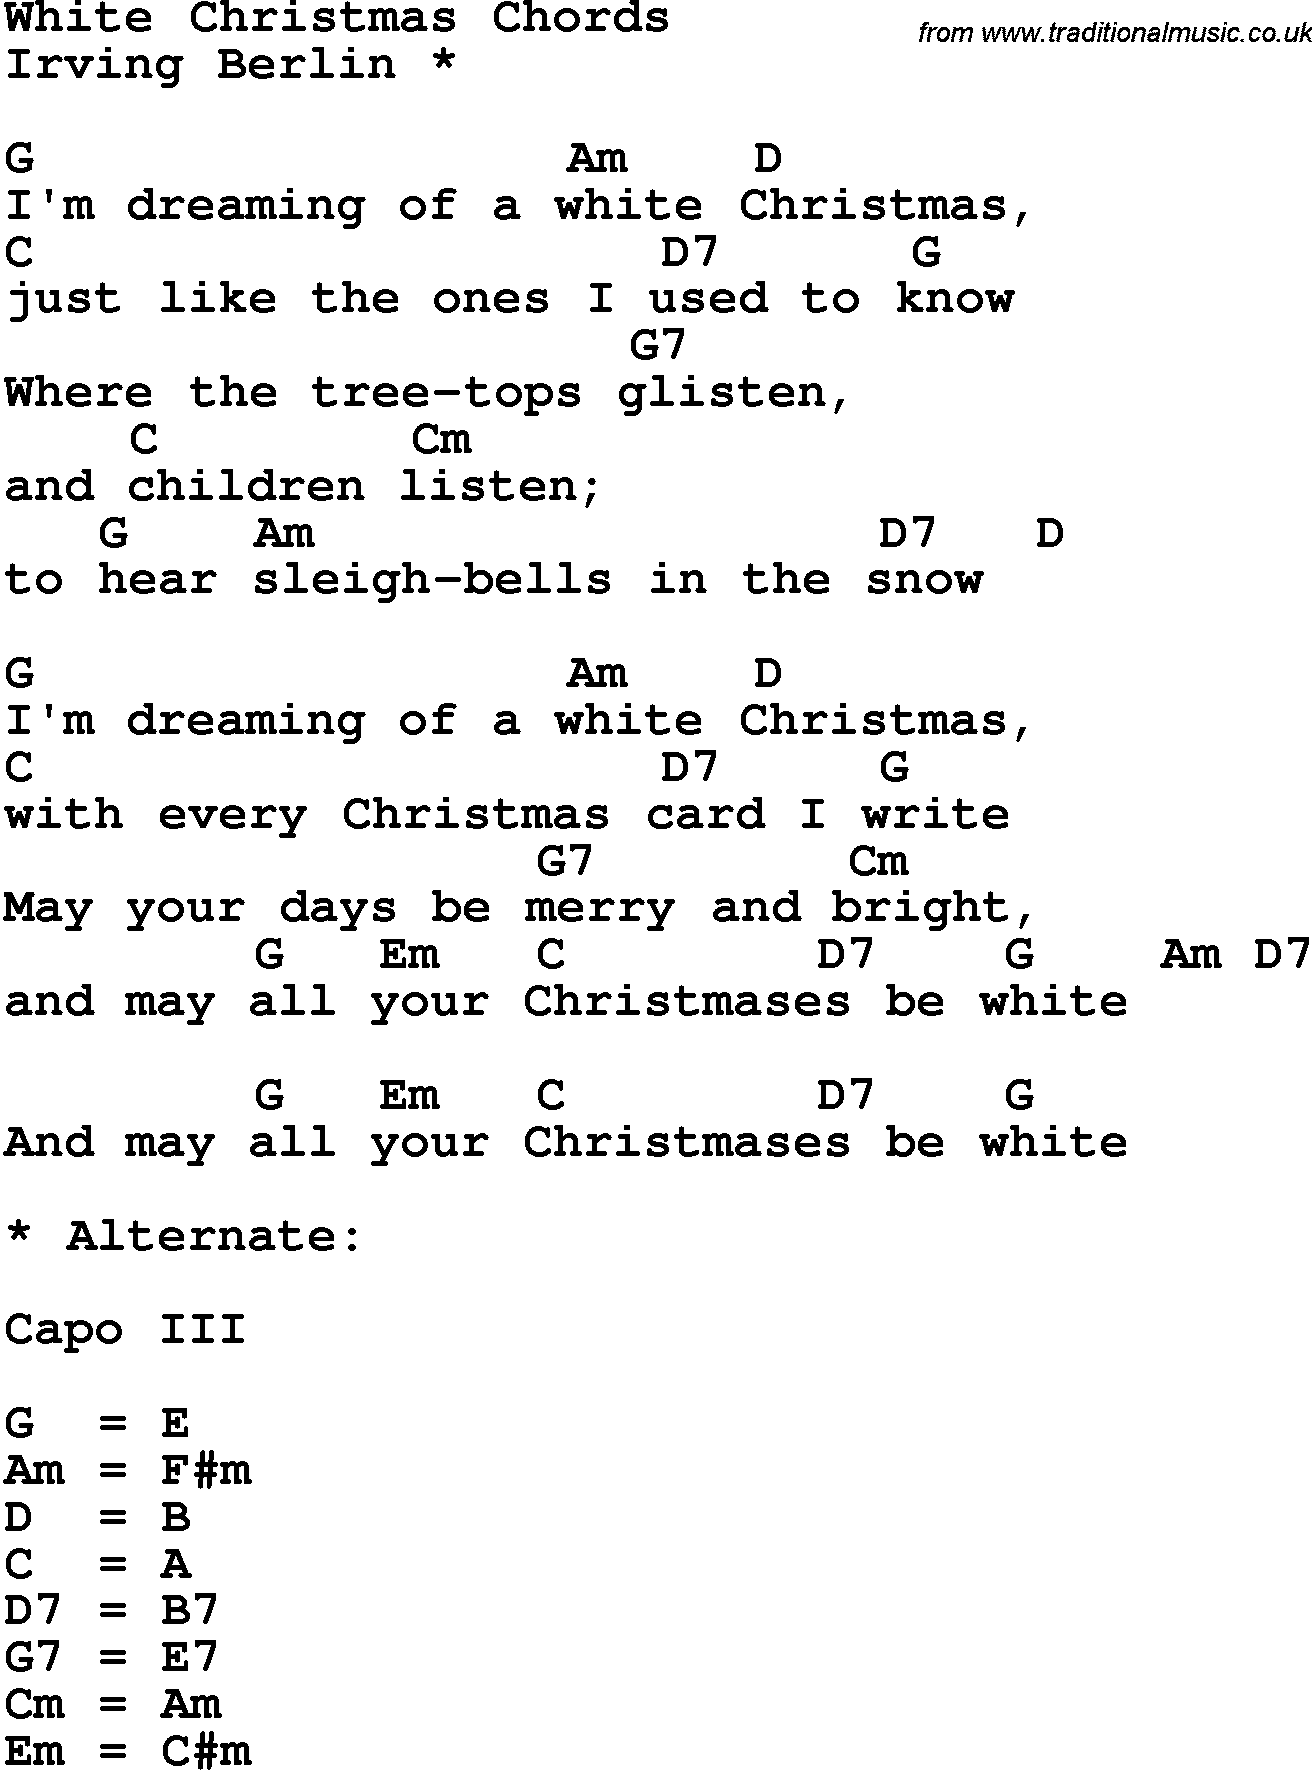 Song lyrics with guitar chords for White Christmas - Irving Berlin